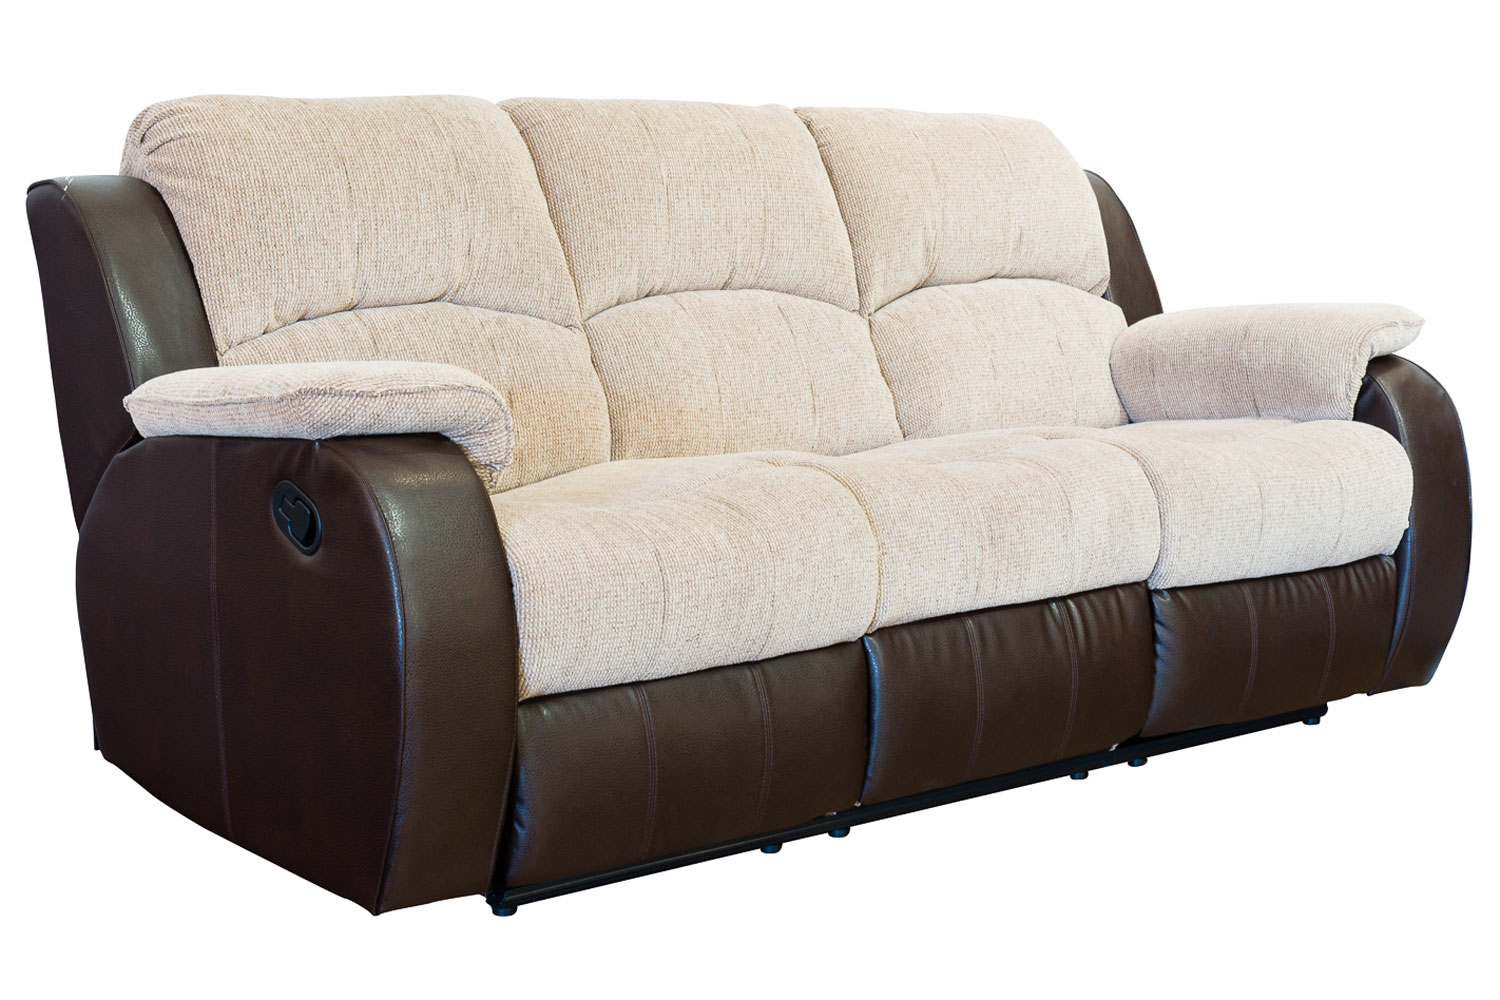 sofa city direct reviews parker knoll sofas john lewis 3 seat recliner lovely seater 44 in